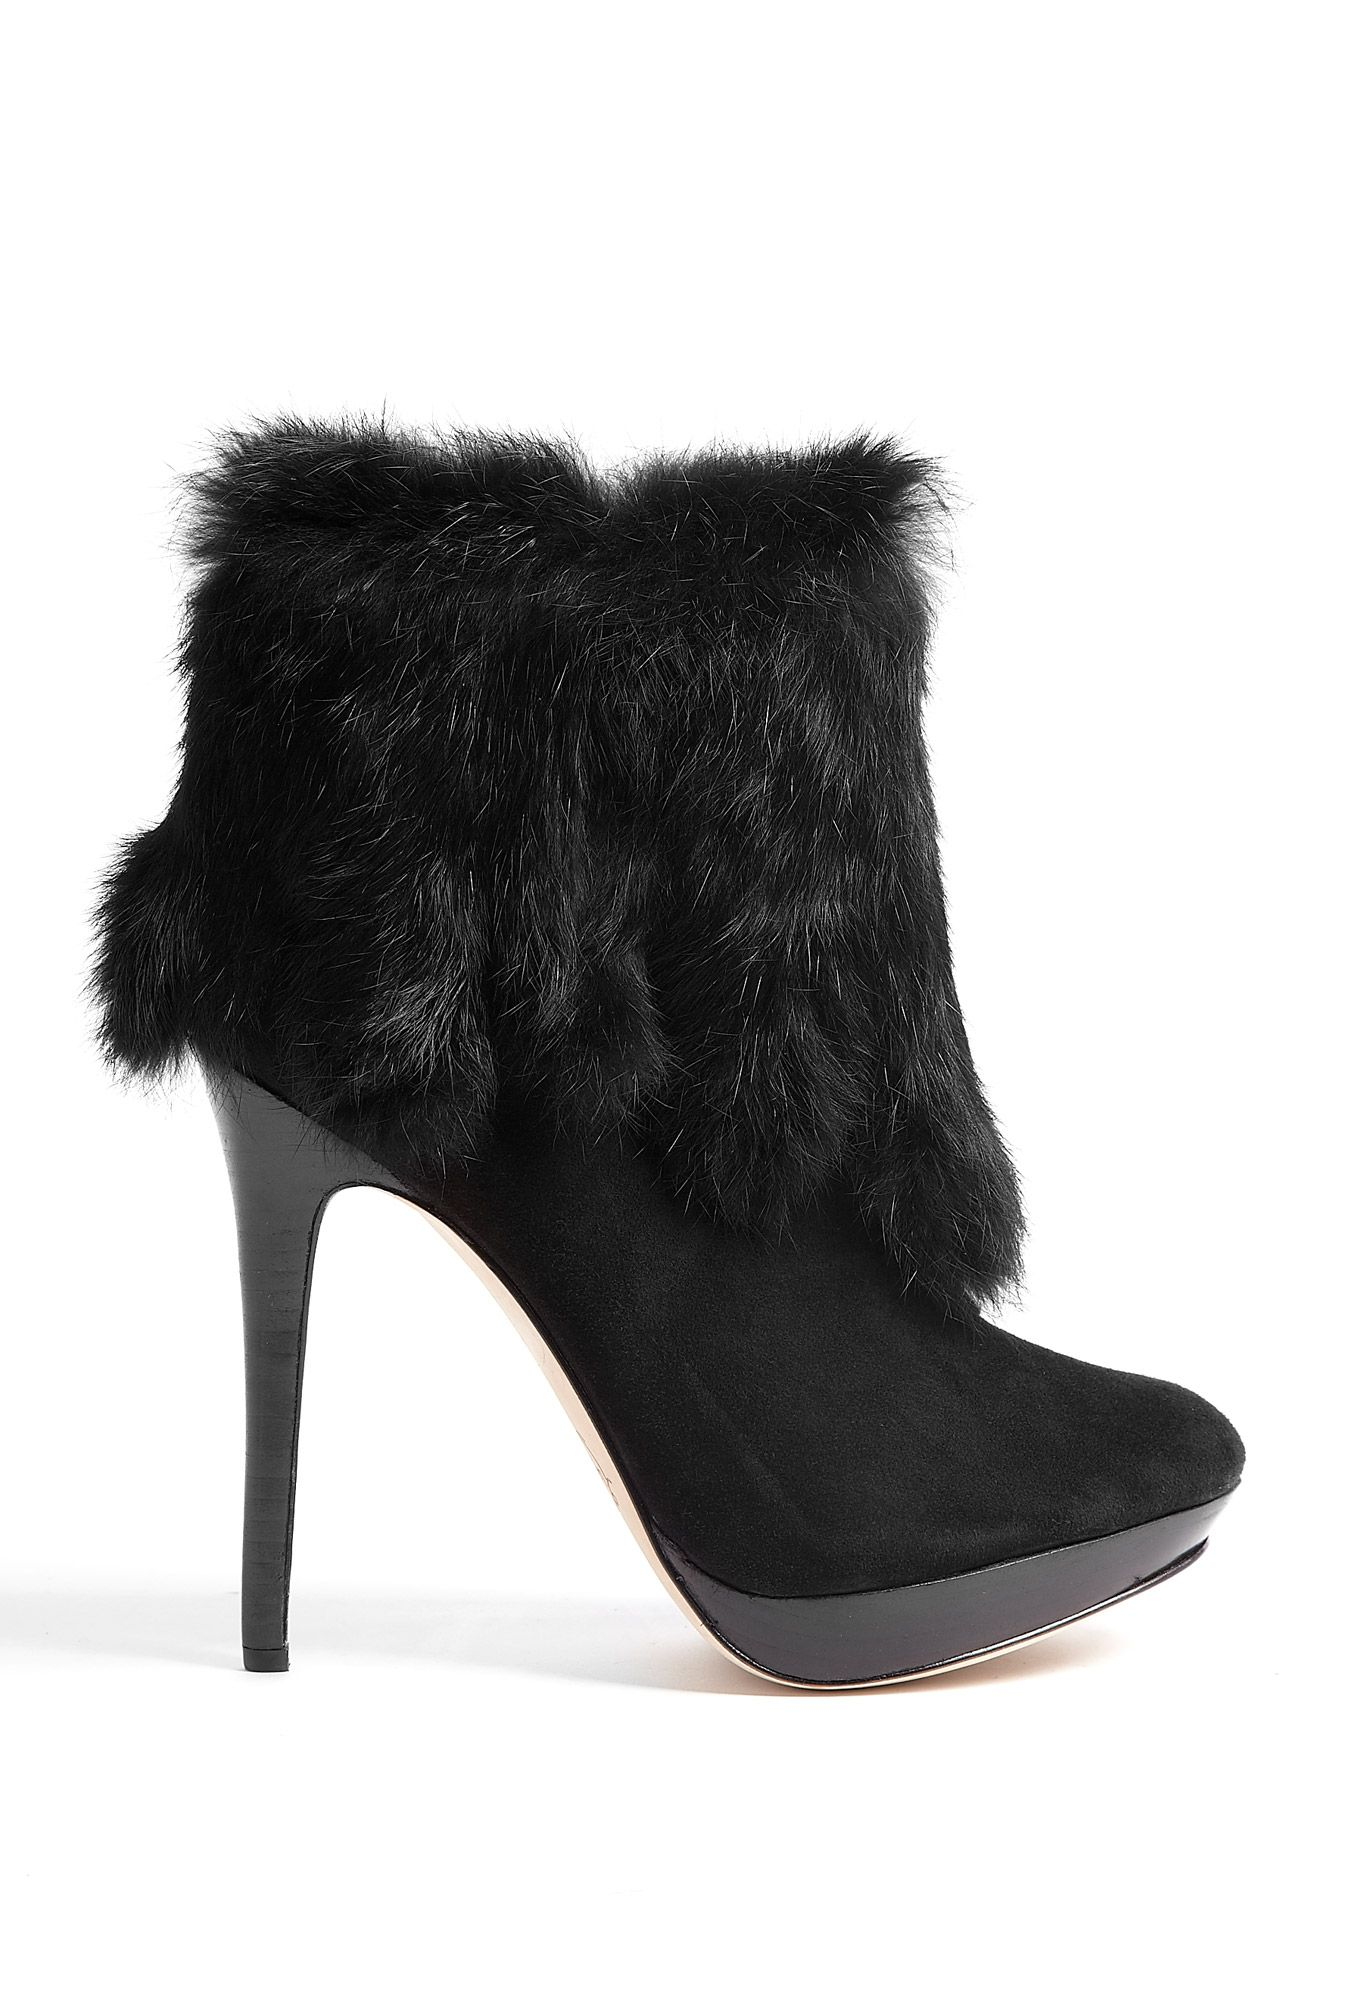 FOOTWEAR - Ankle boots Lucy Choi London glmXC